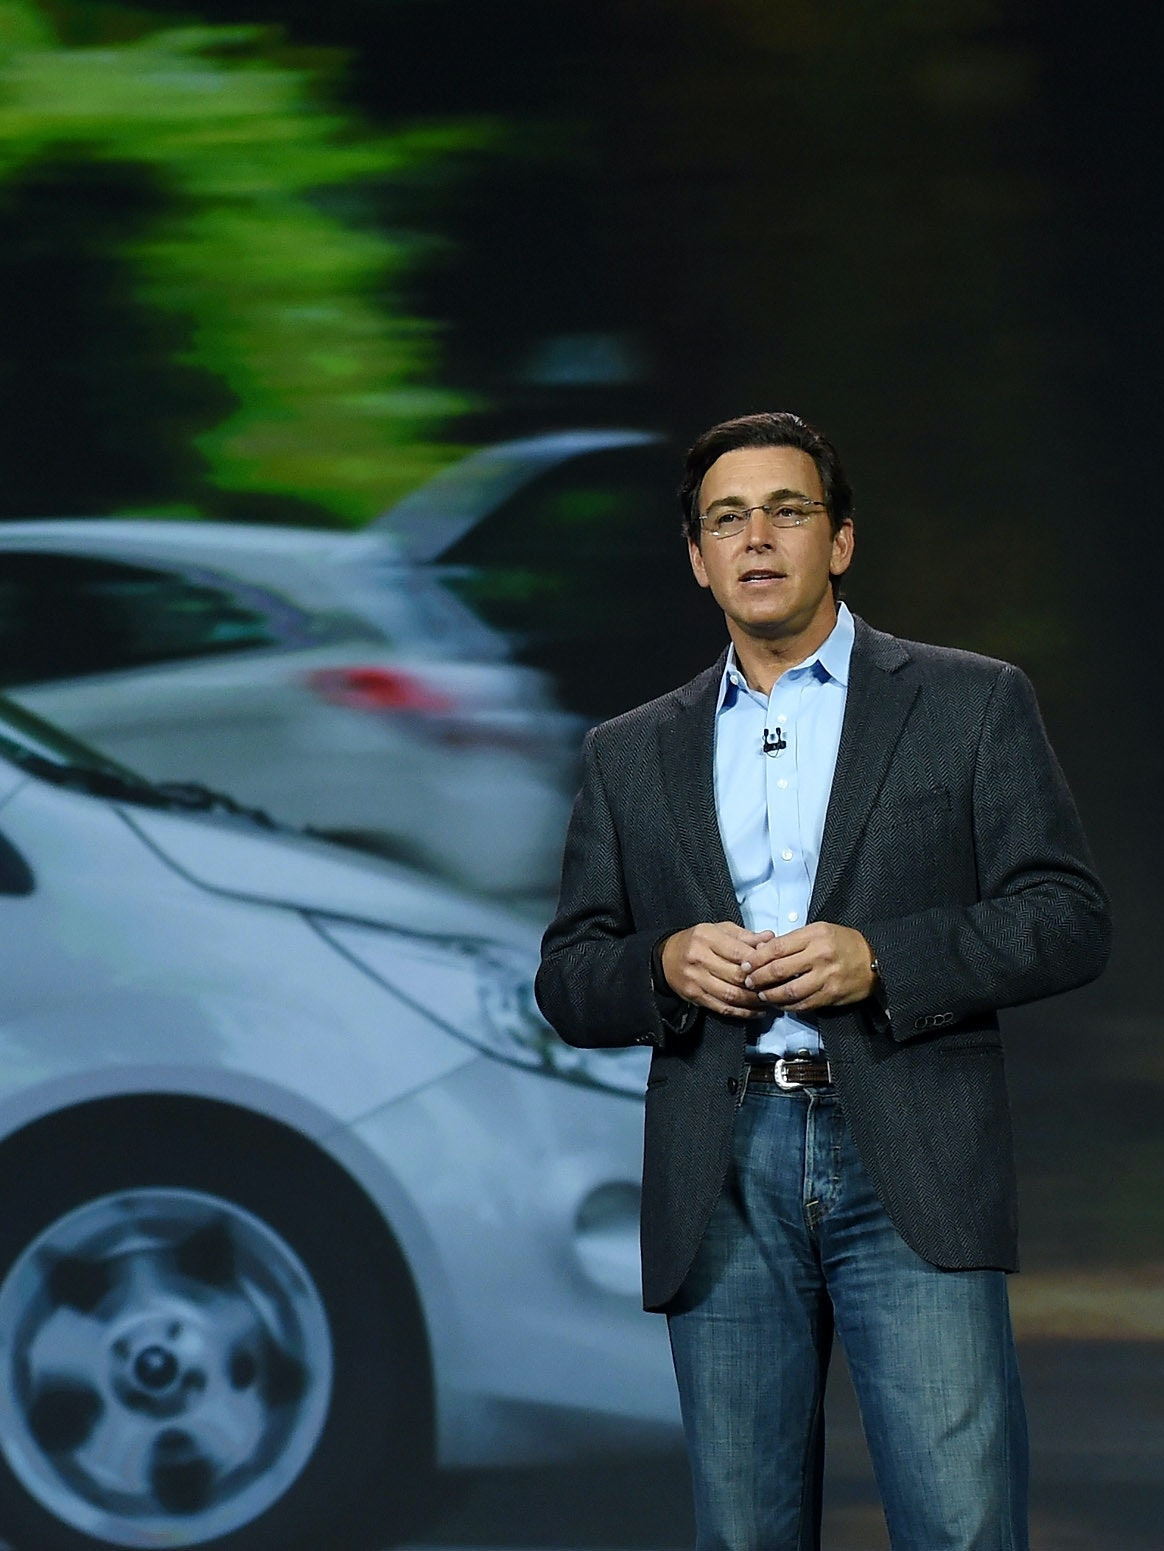 Ford wants a hybrid electric autonomous vehicle on the roads by 2021